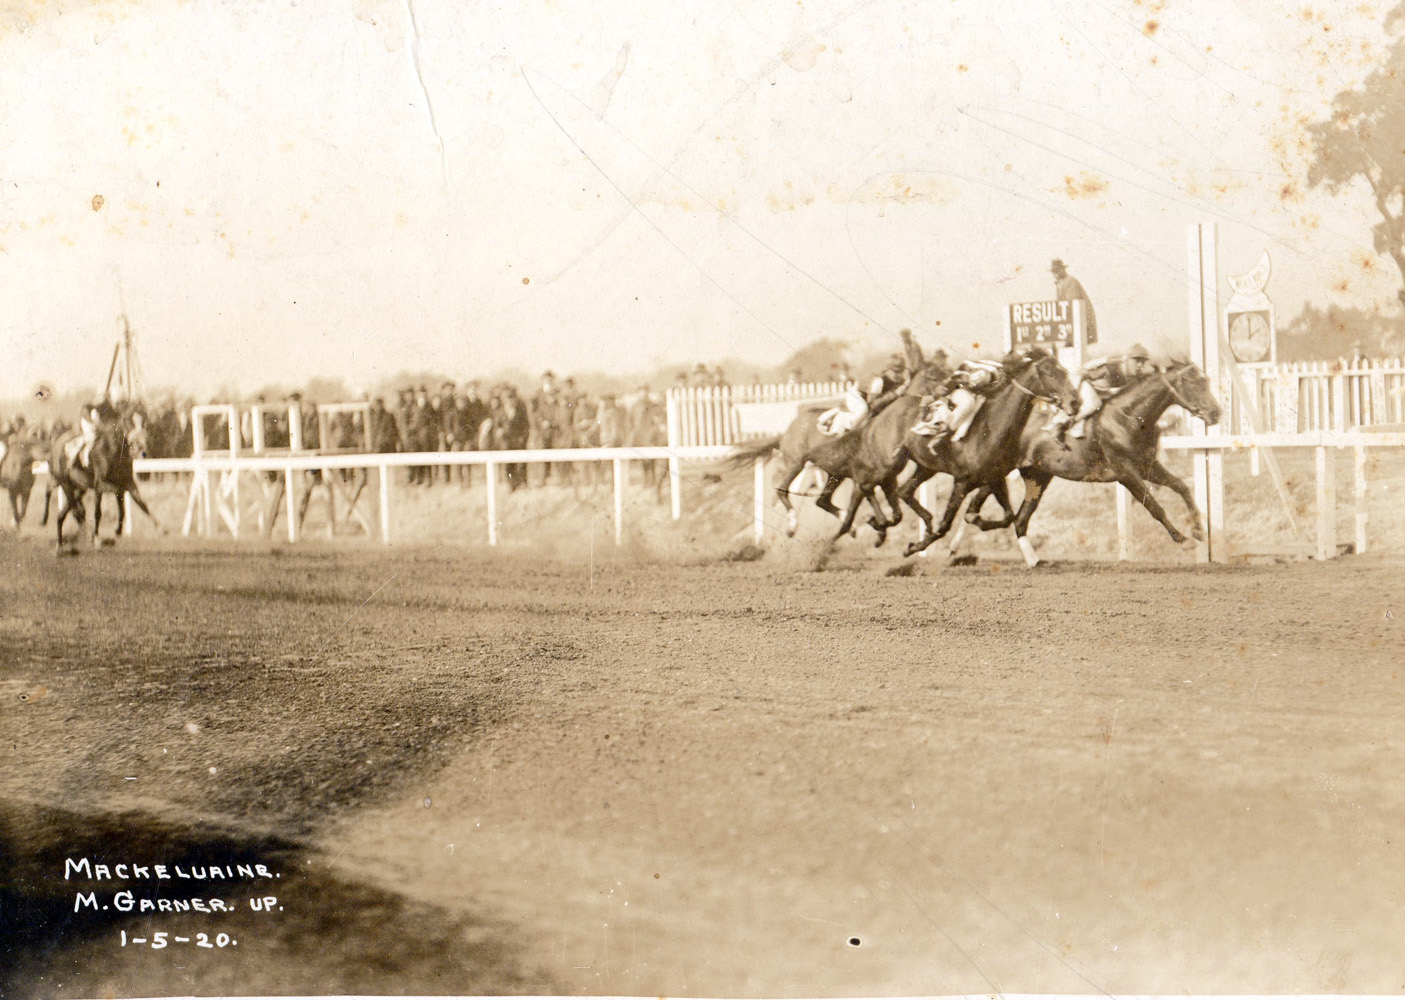 Mack Garner and Mackekvaine winning the first race at New Orleans on January 5, 1920 (Museum Collection)